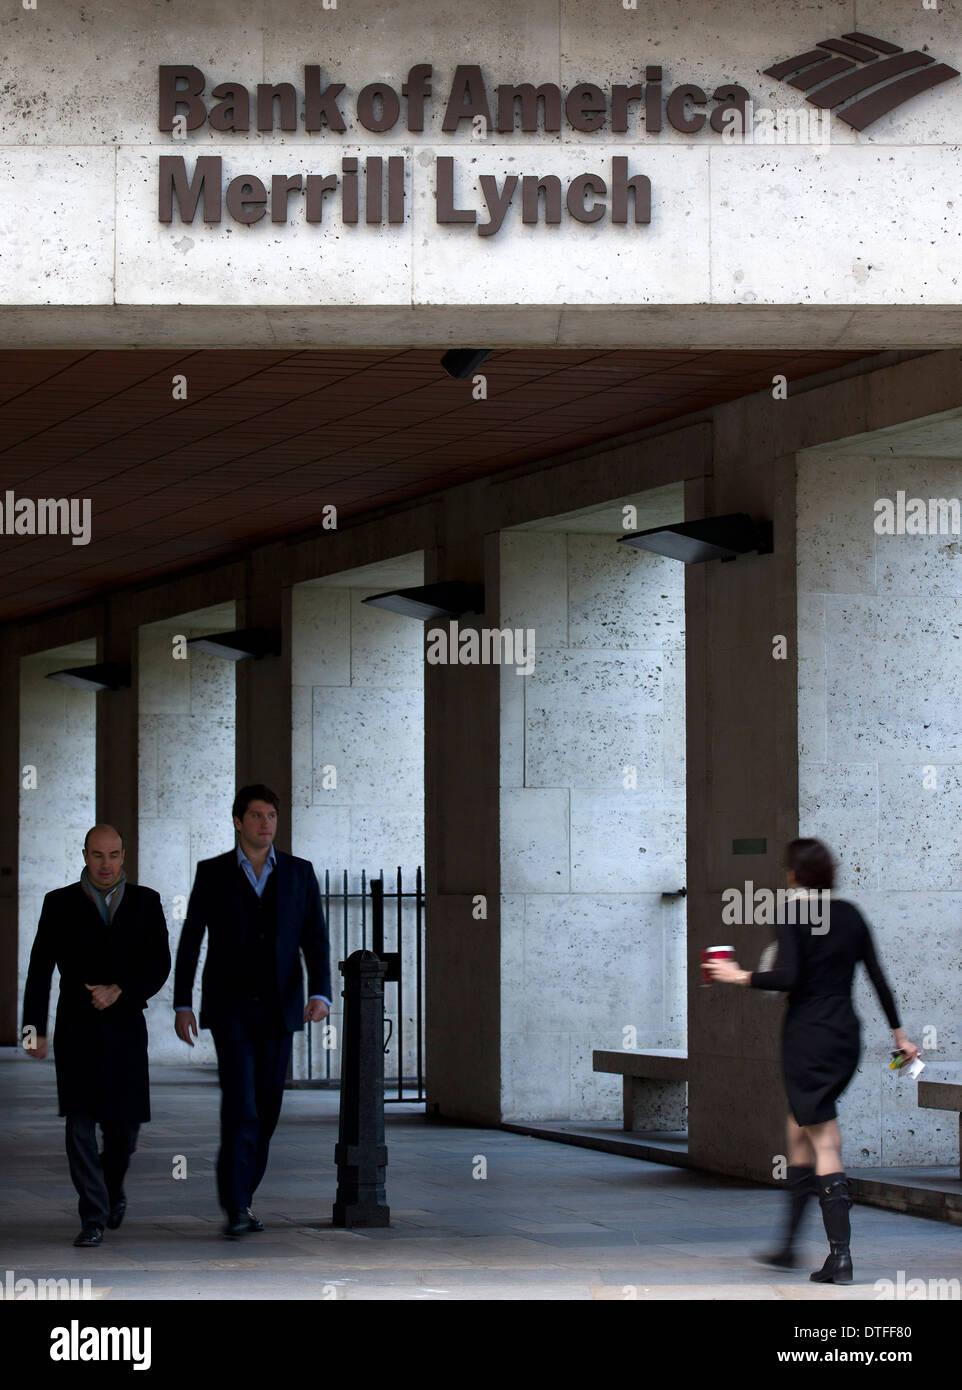 United Kingdom, London : Bank of America Merrill Lynch in the City of London. - Stock Image